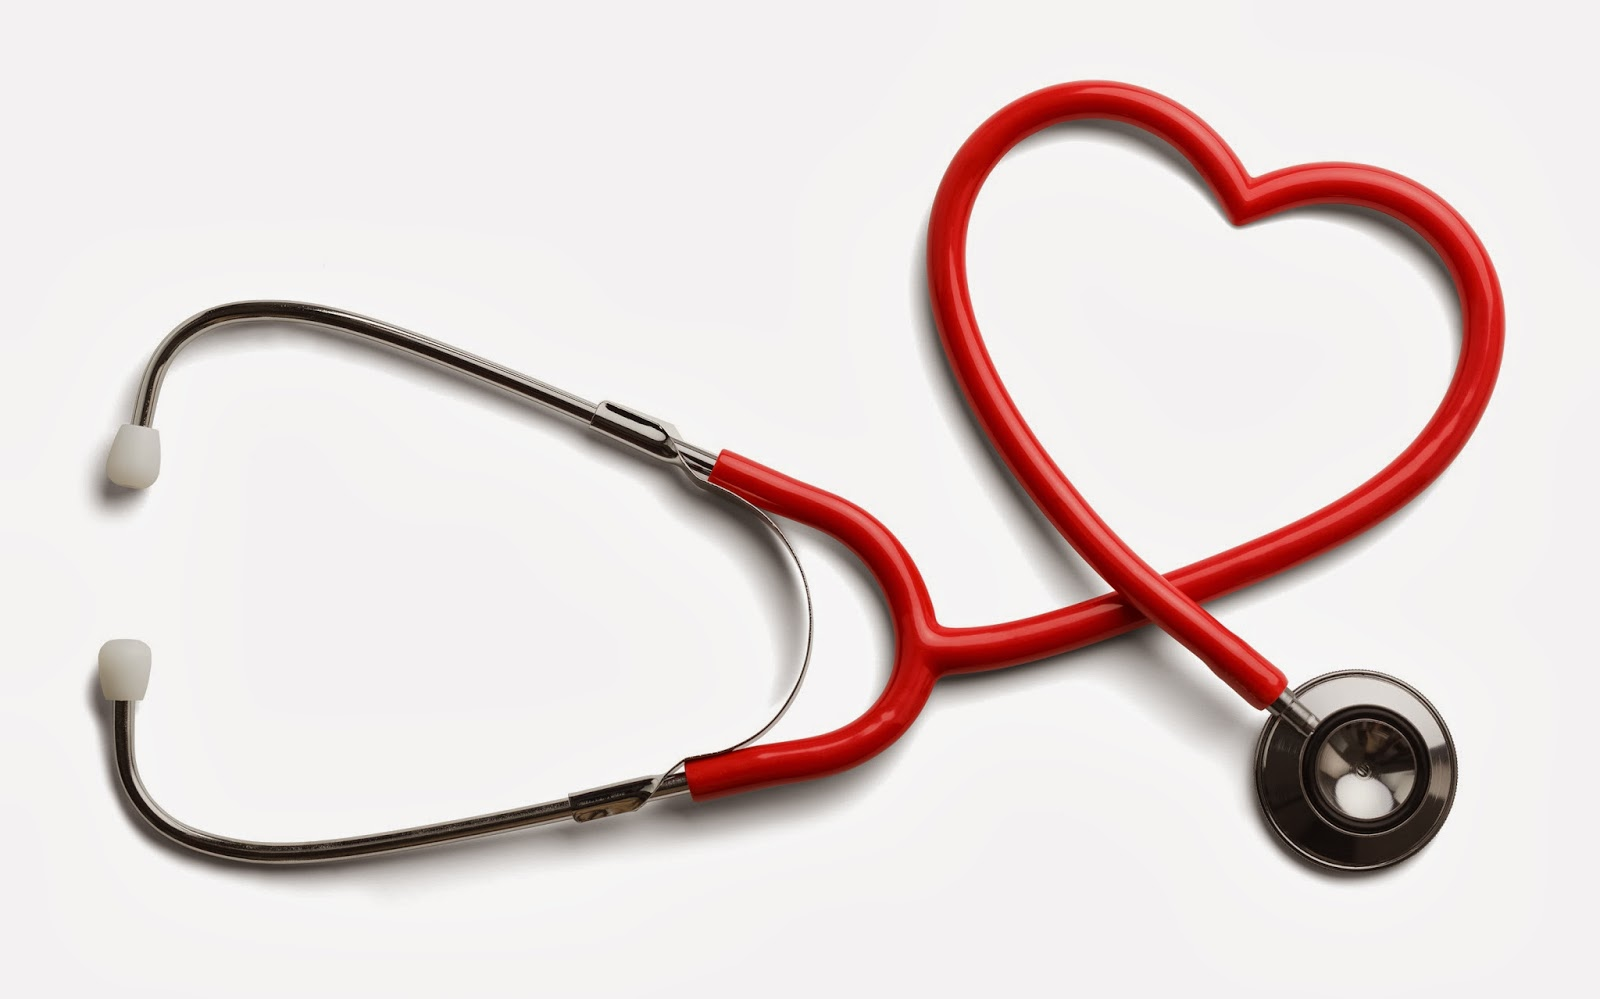 Clip Heart Stethoscope Art Png Transparent Background Free Download 27511 Freeiconspng 27 images of stethoscope icon. clip heart stethoscope art png